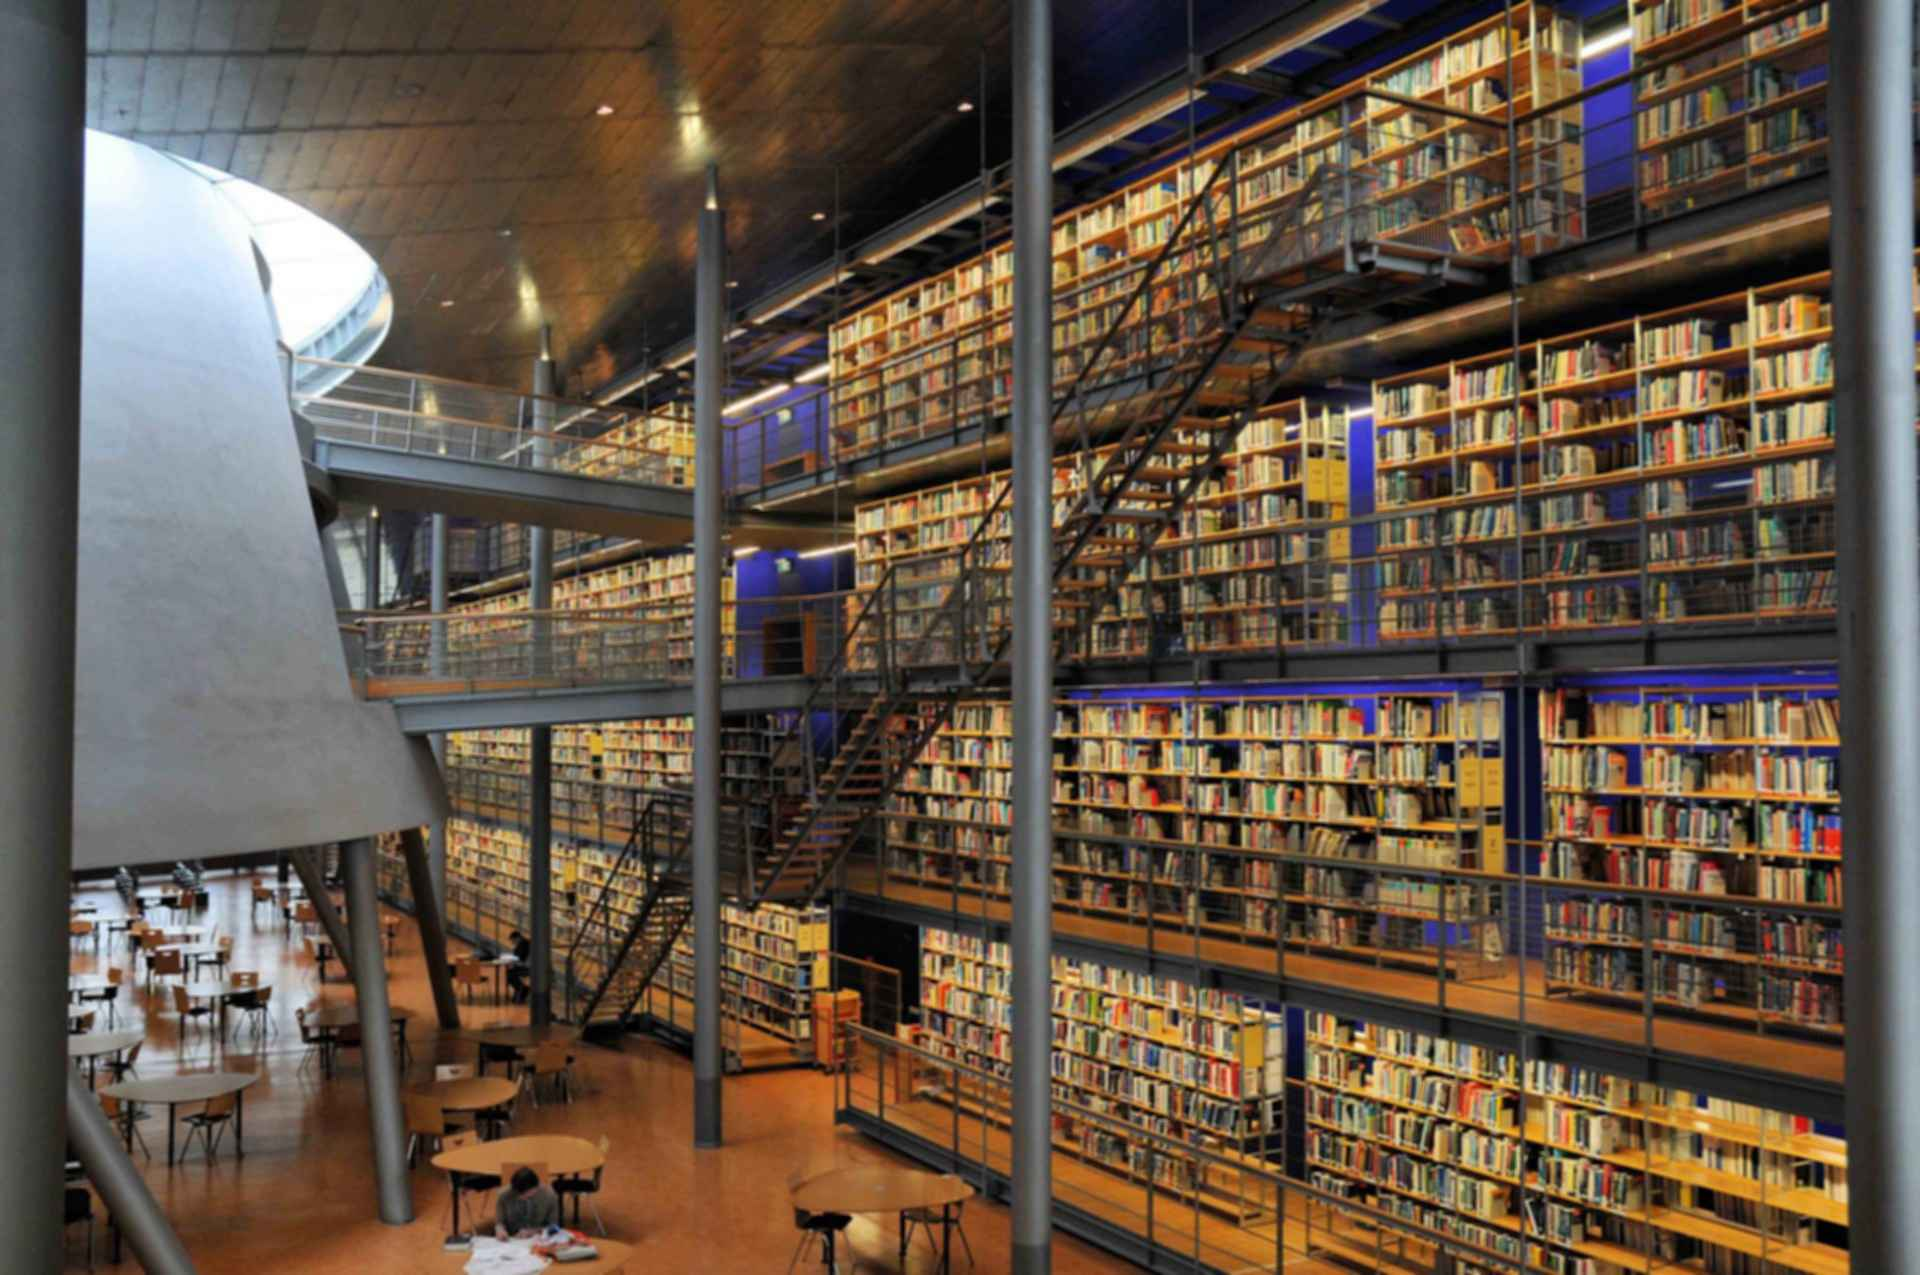 TU Delft Library - Interior